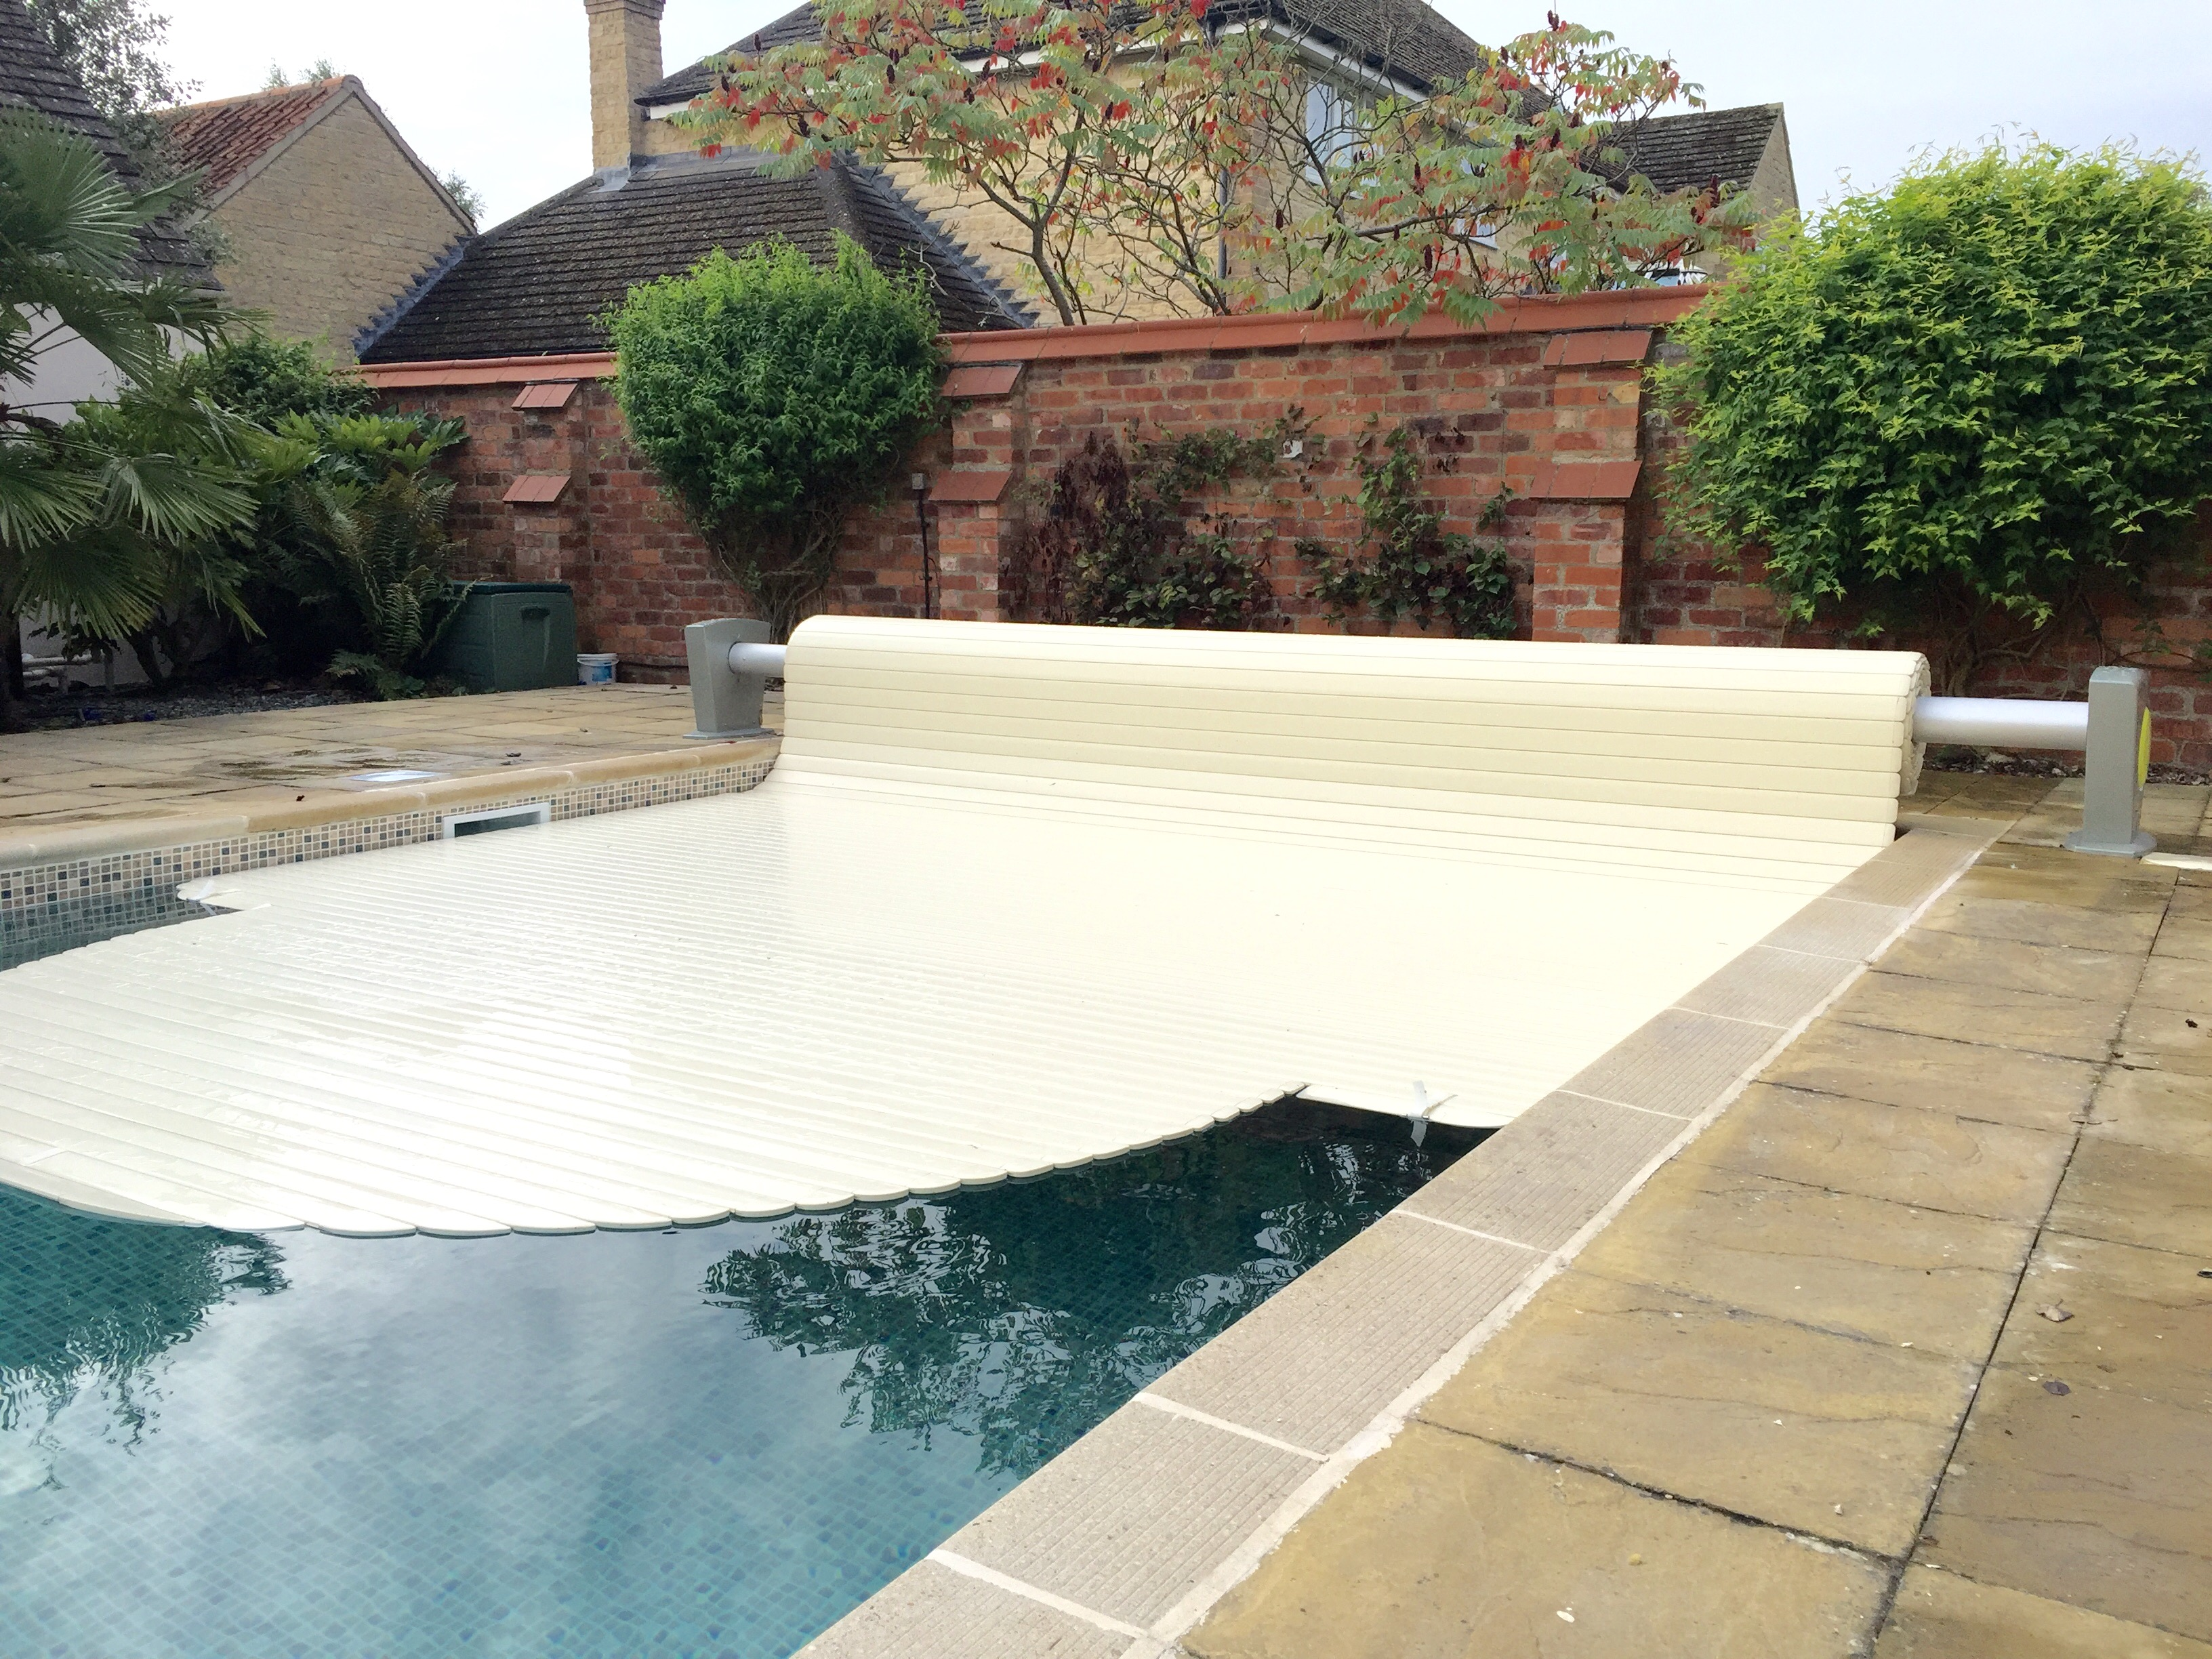 Slatted cover half on pool